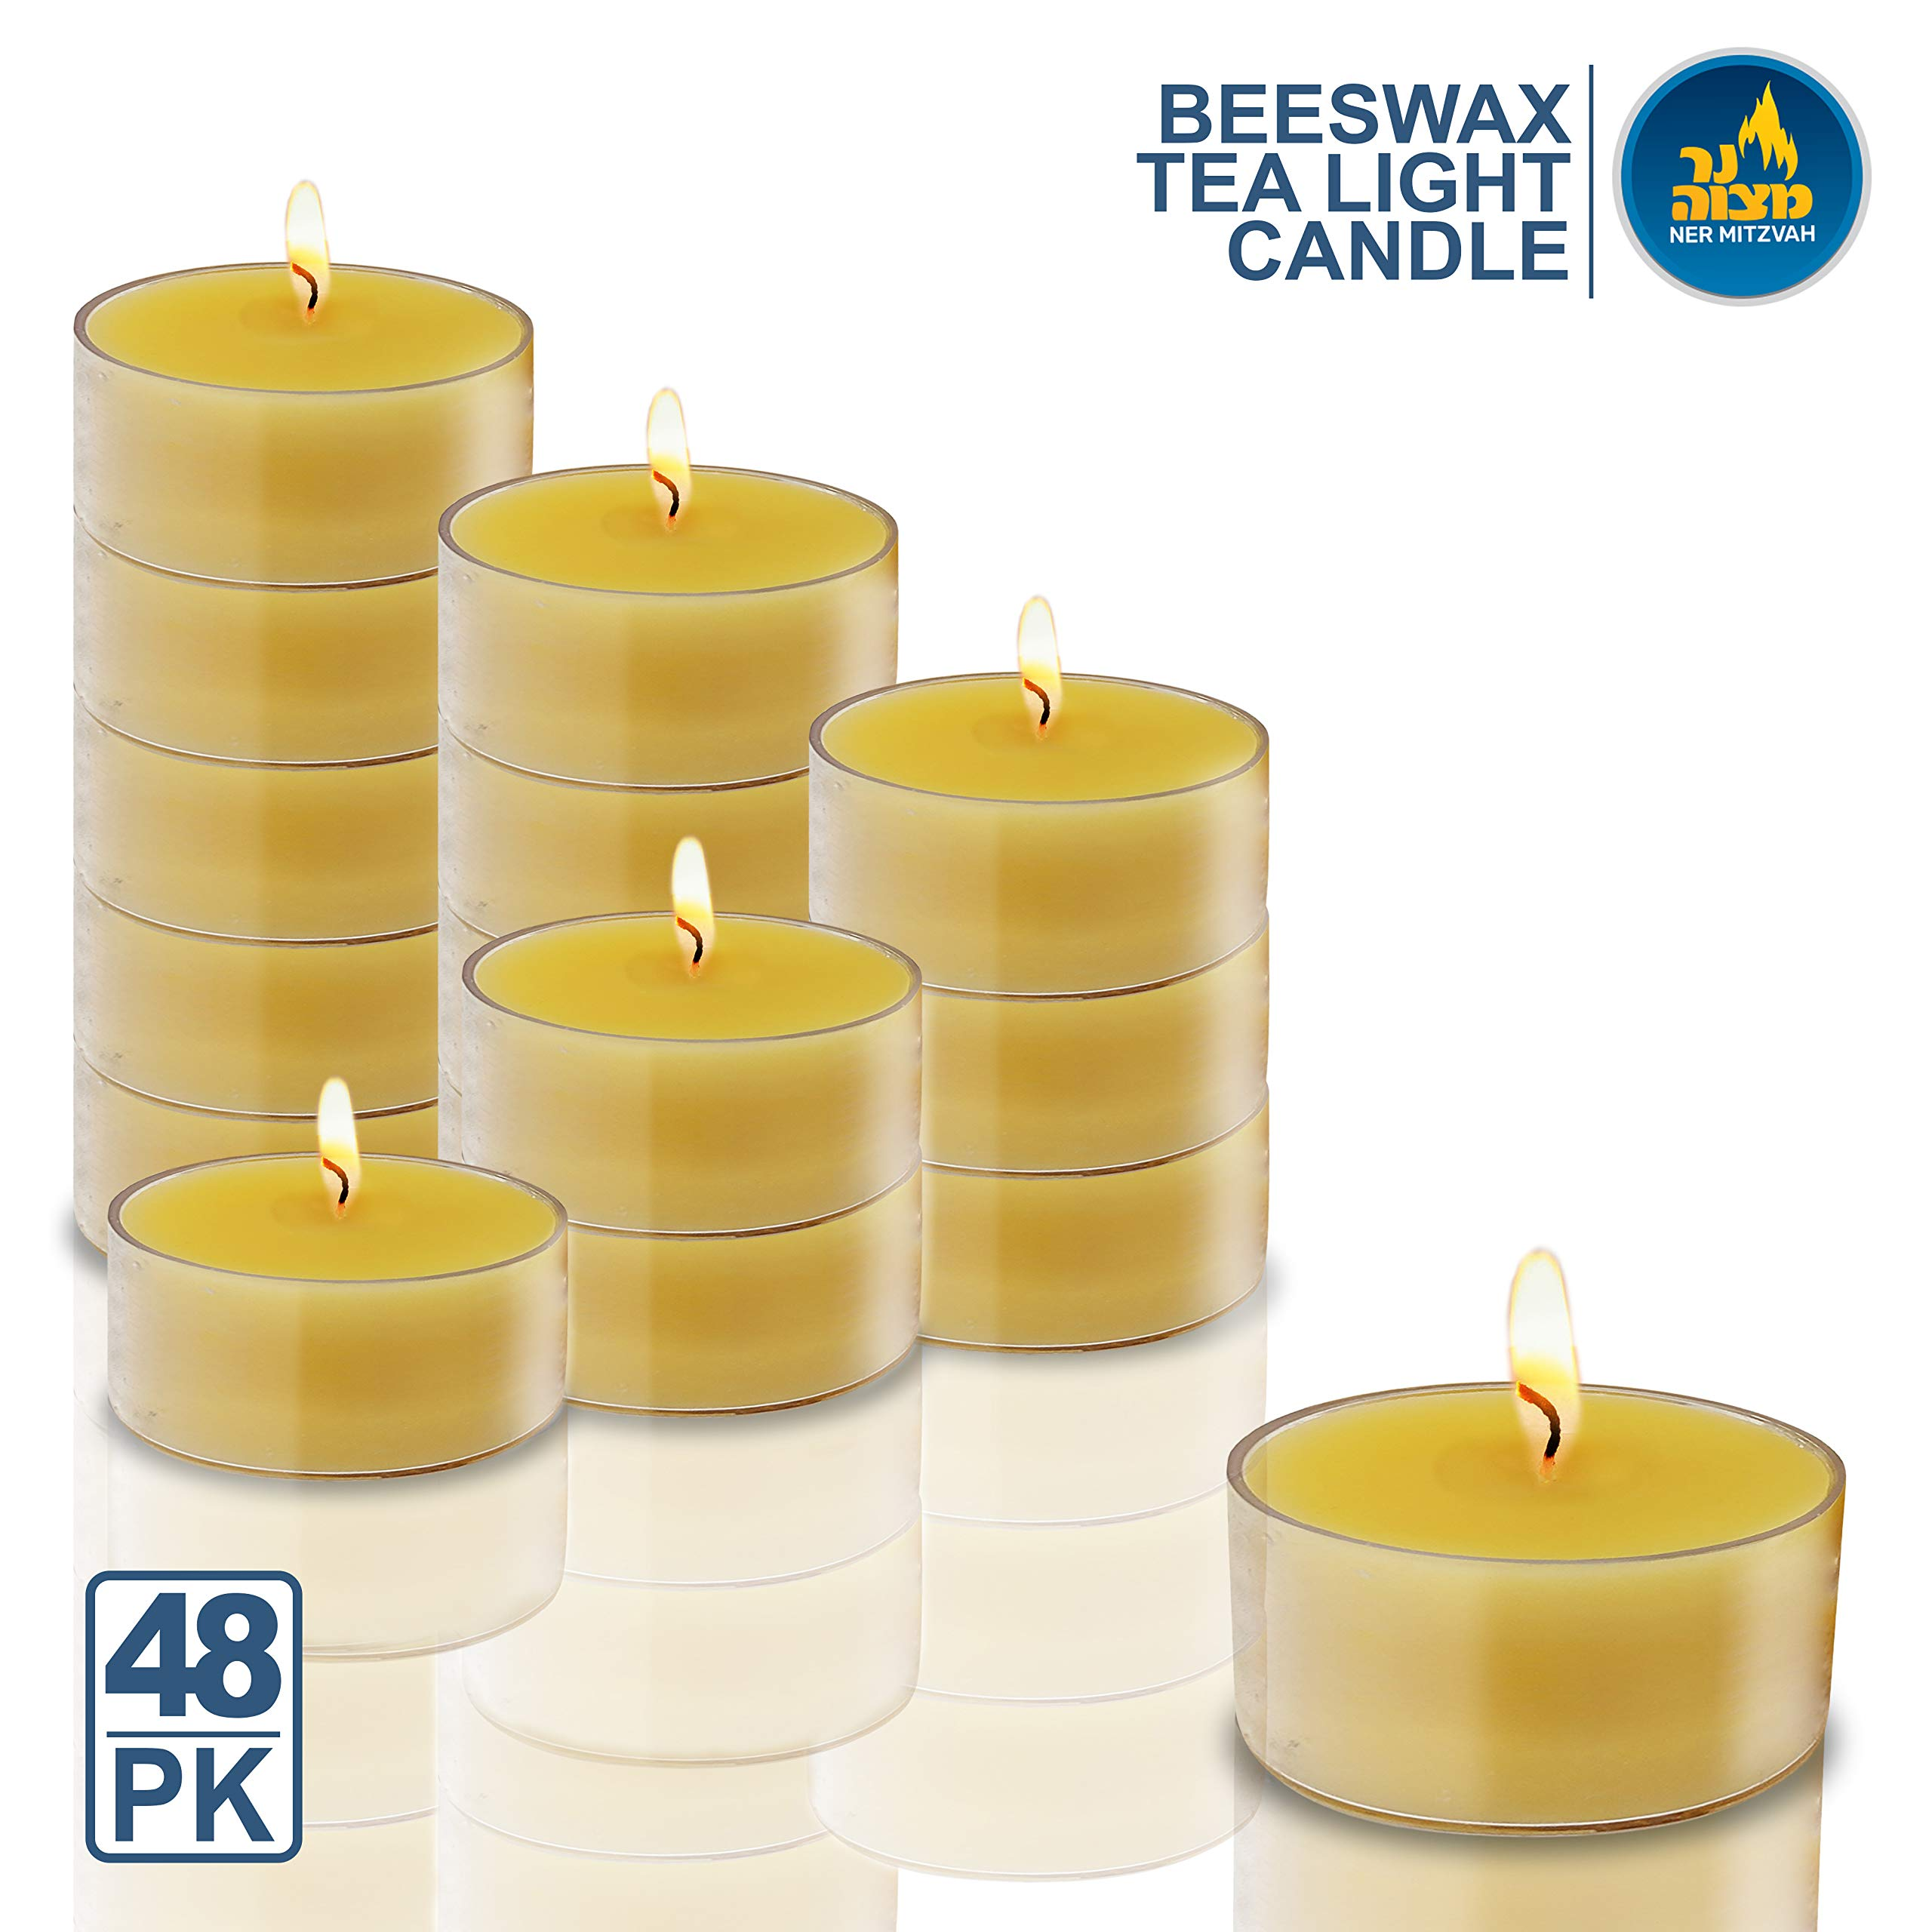 Ner Mitzvah Pure Beeswax Tealight Candles Handmade in USA - 48 Pack - 4 Hour Burn Time, Clear Cup by Ner Mitzvah